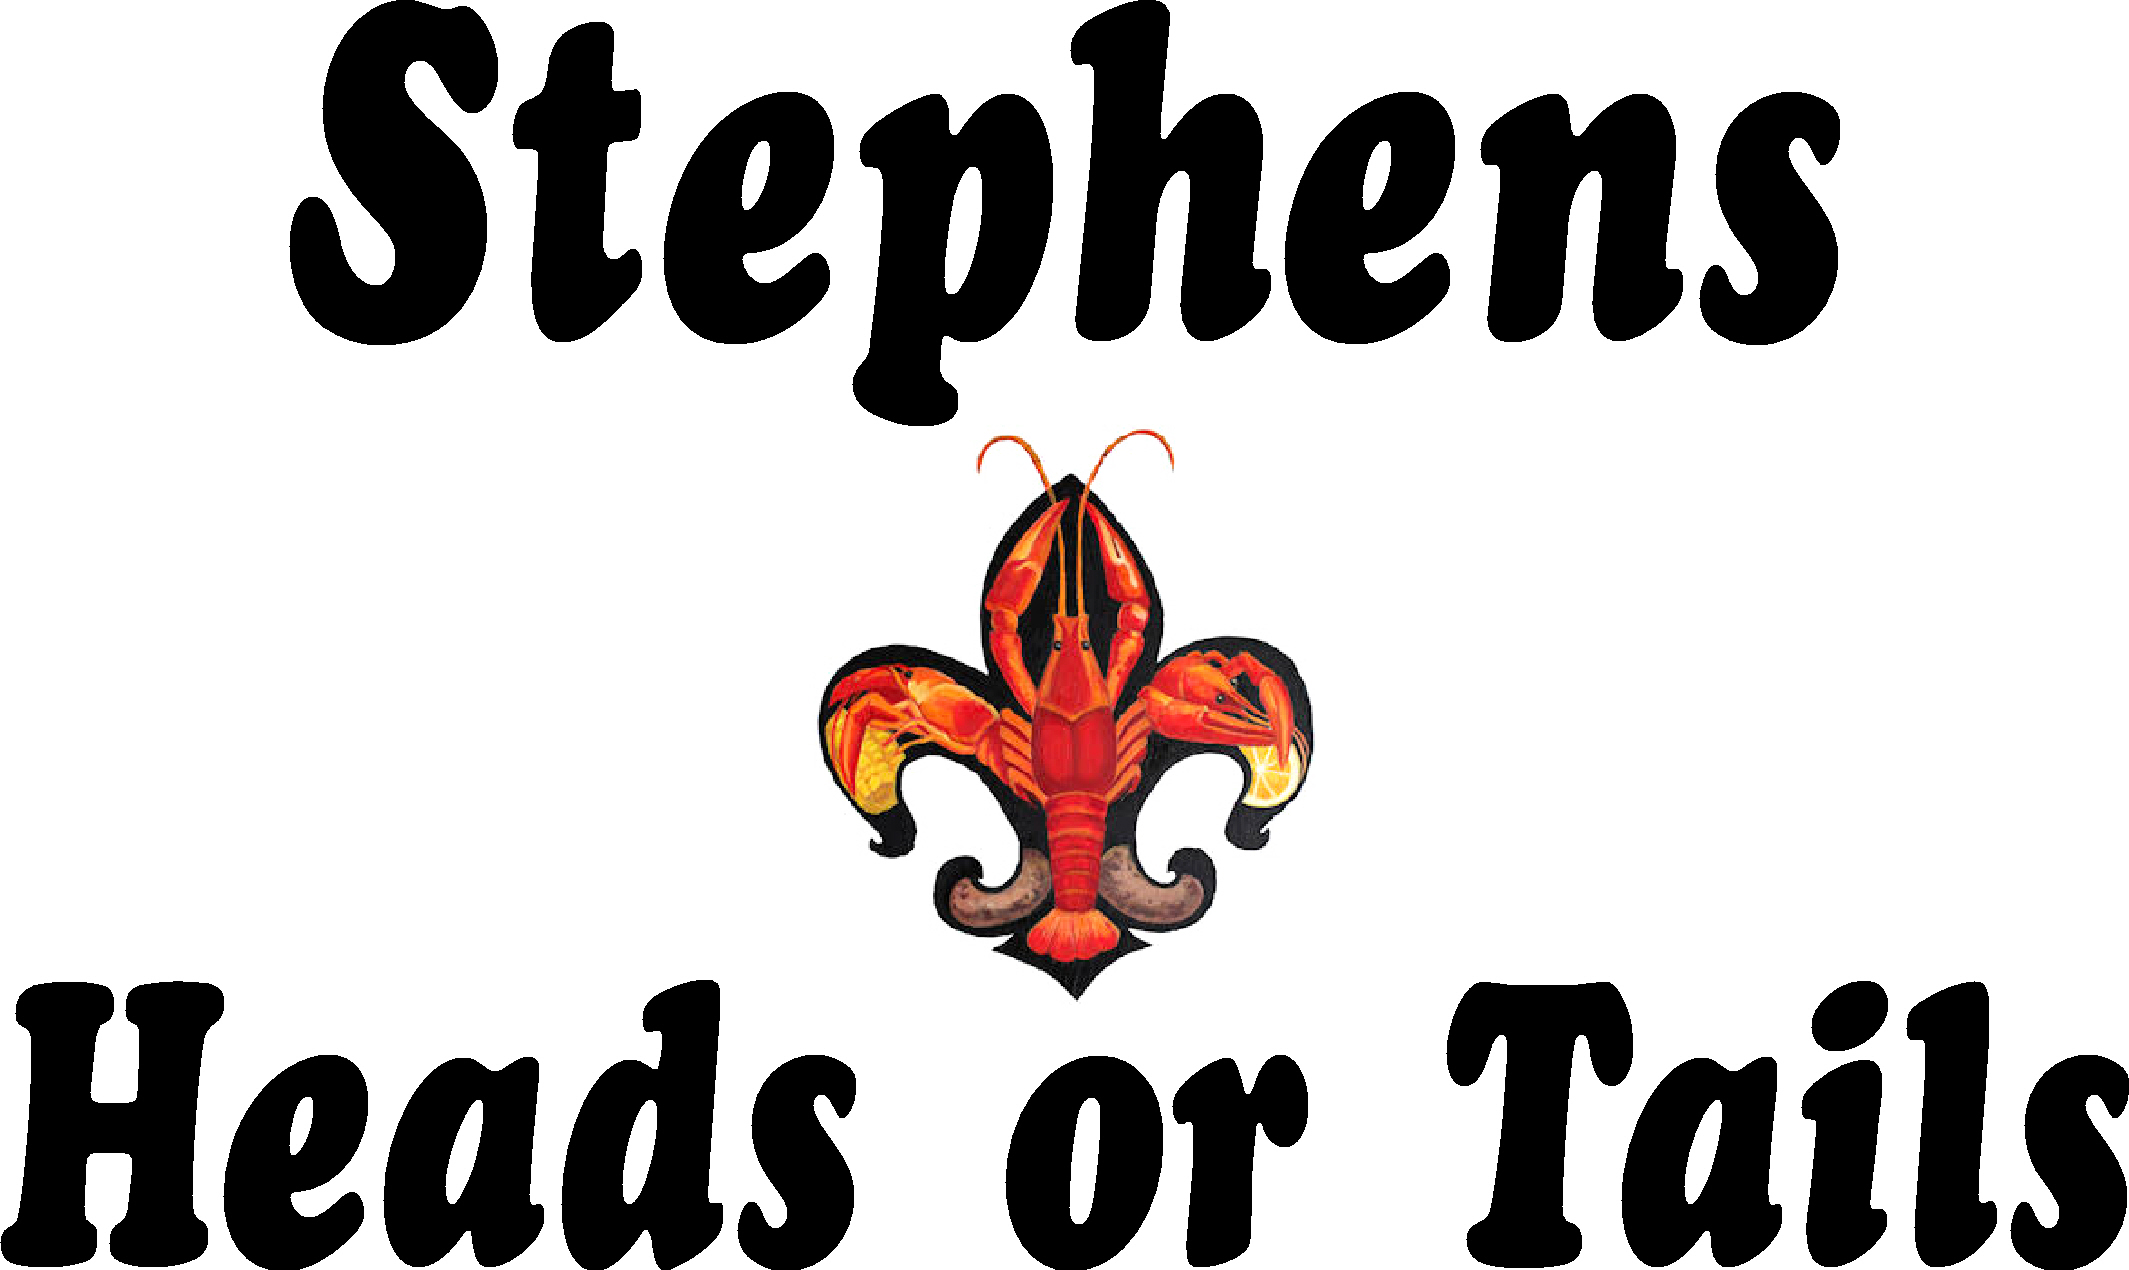 Stephen's Heads or Tails